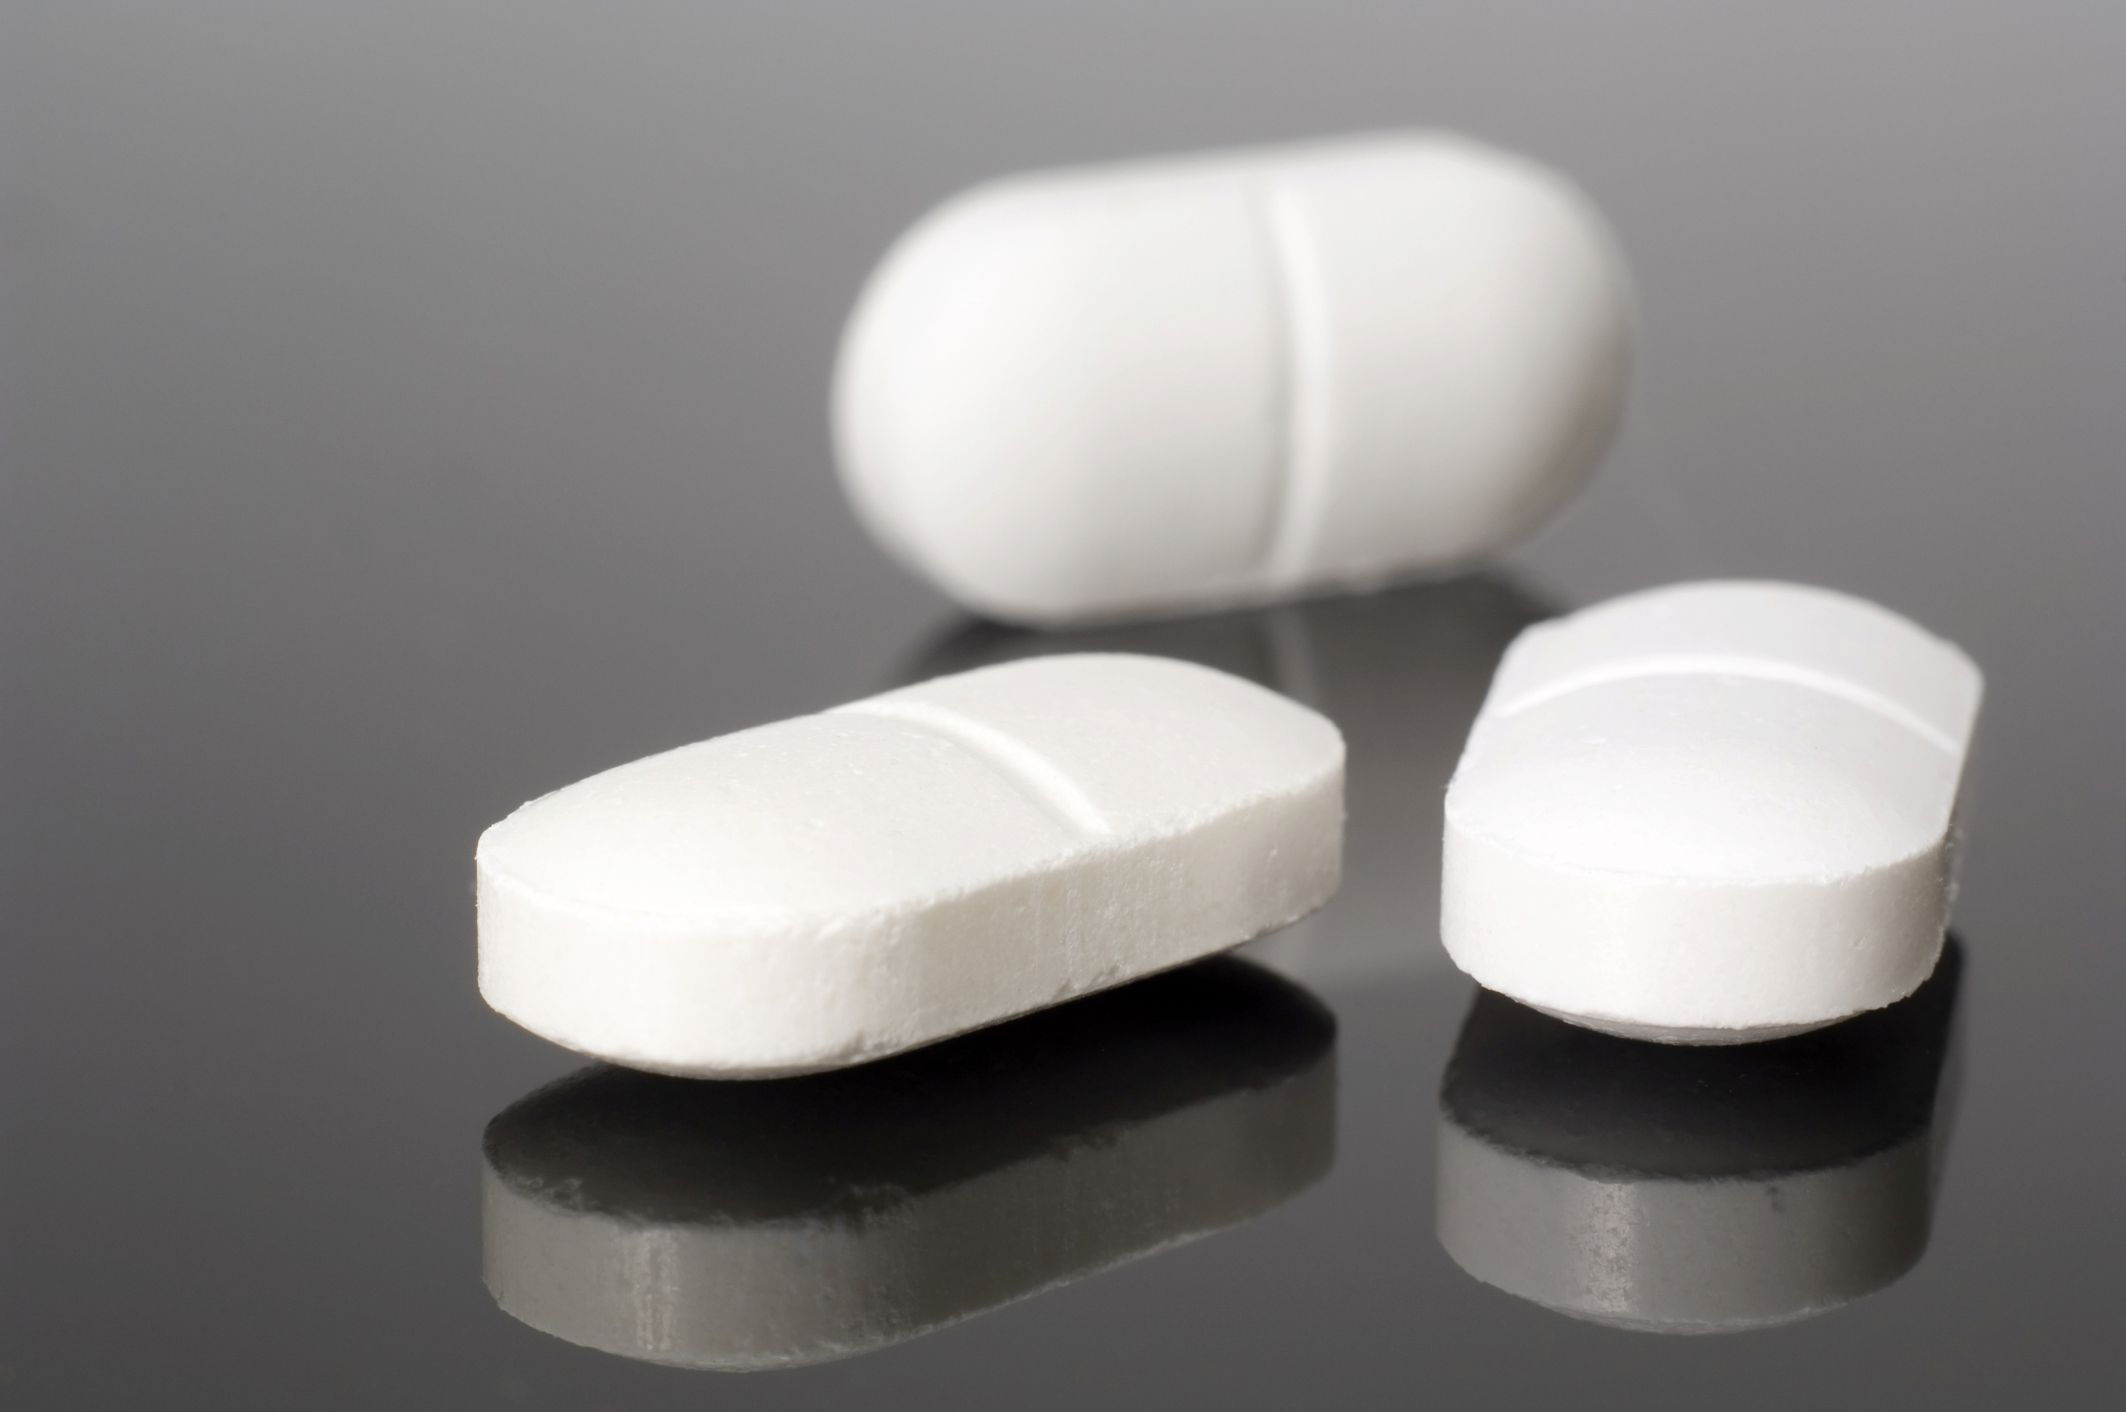 Hydrocodone Acetaminophen Is Commonly Prescribed For Pain